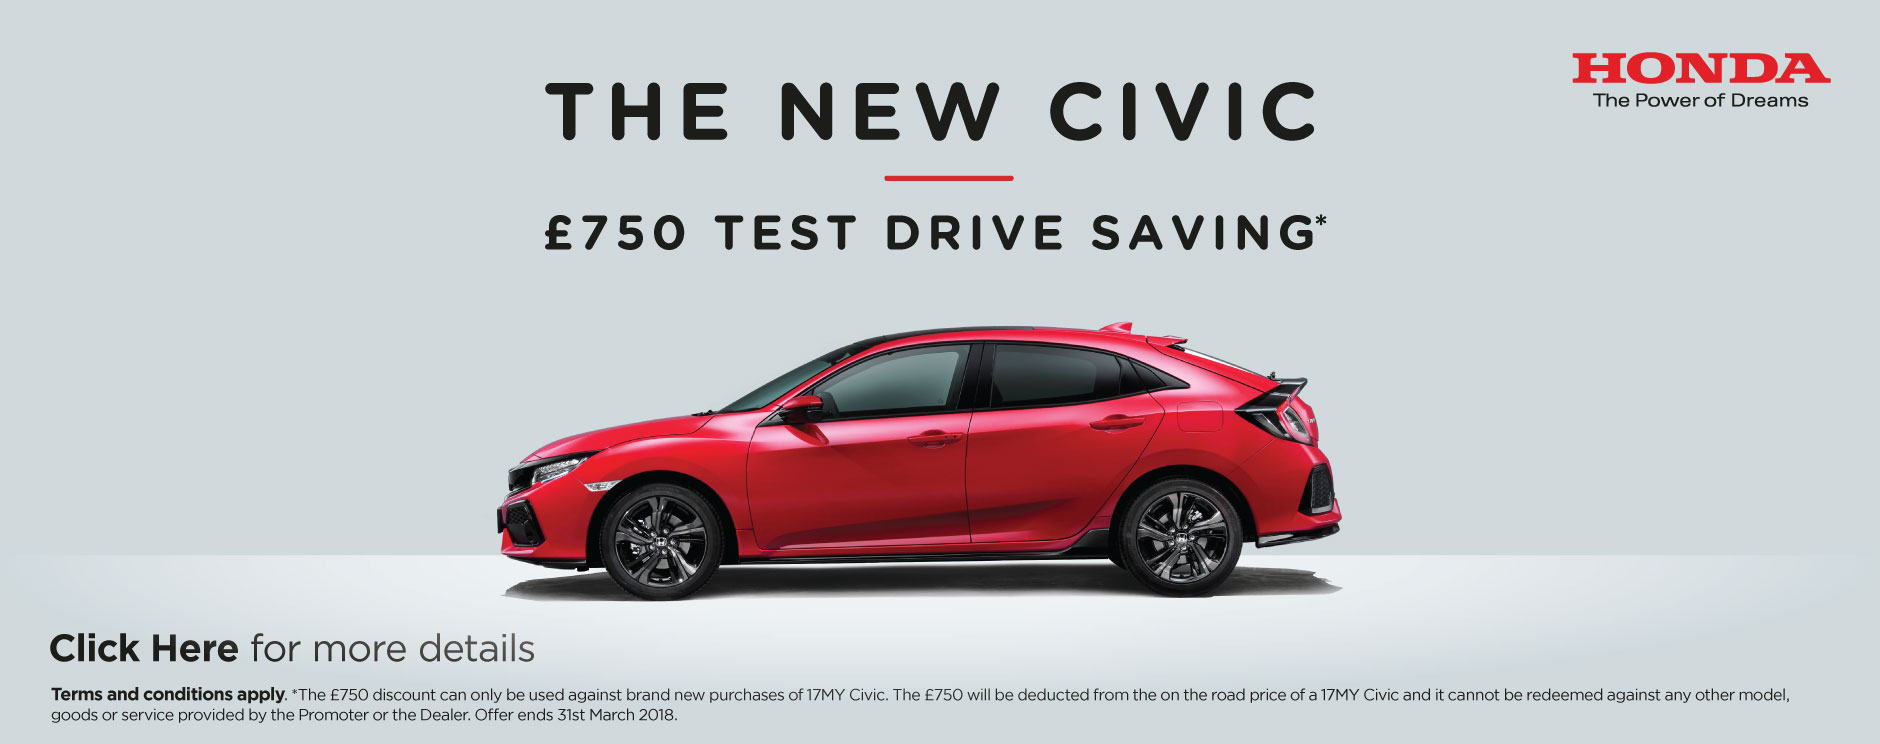 Honda 'The New Civic' 130318